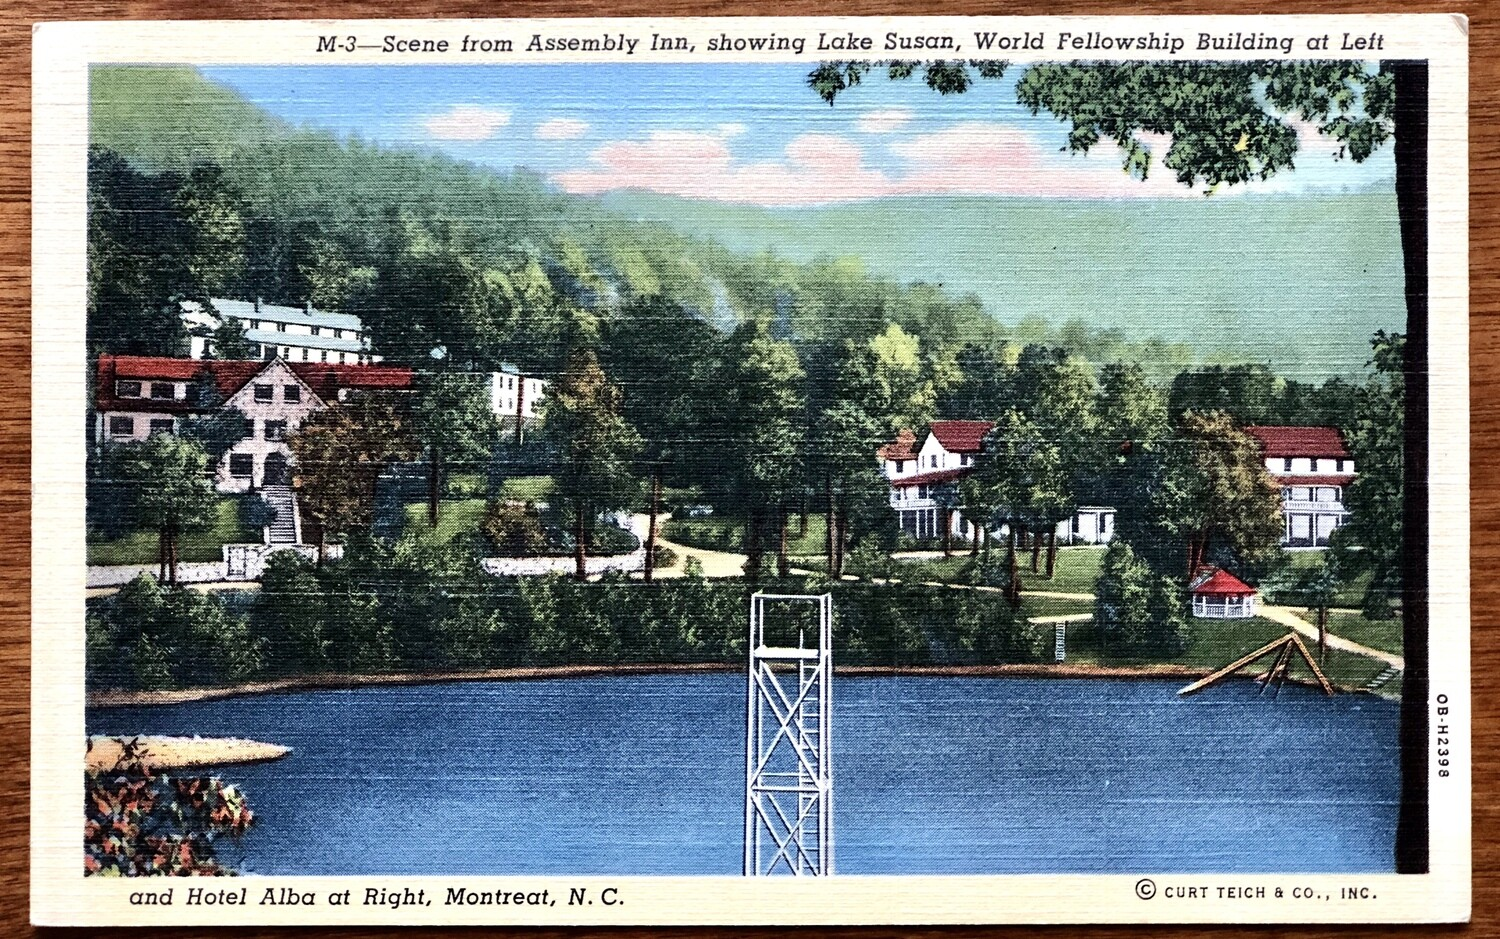 Scene from Assembly Inn Showing lake Susan World Fellowship Building